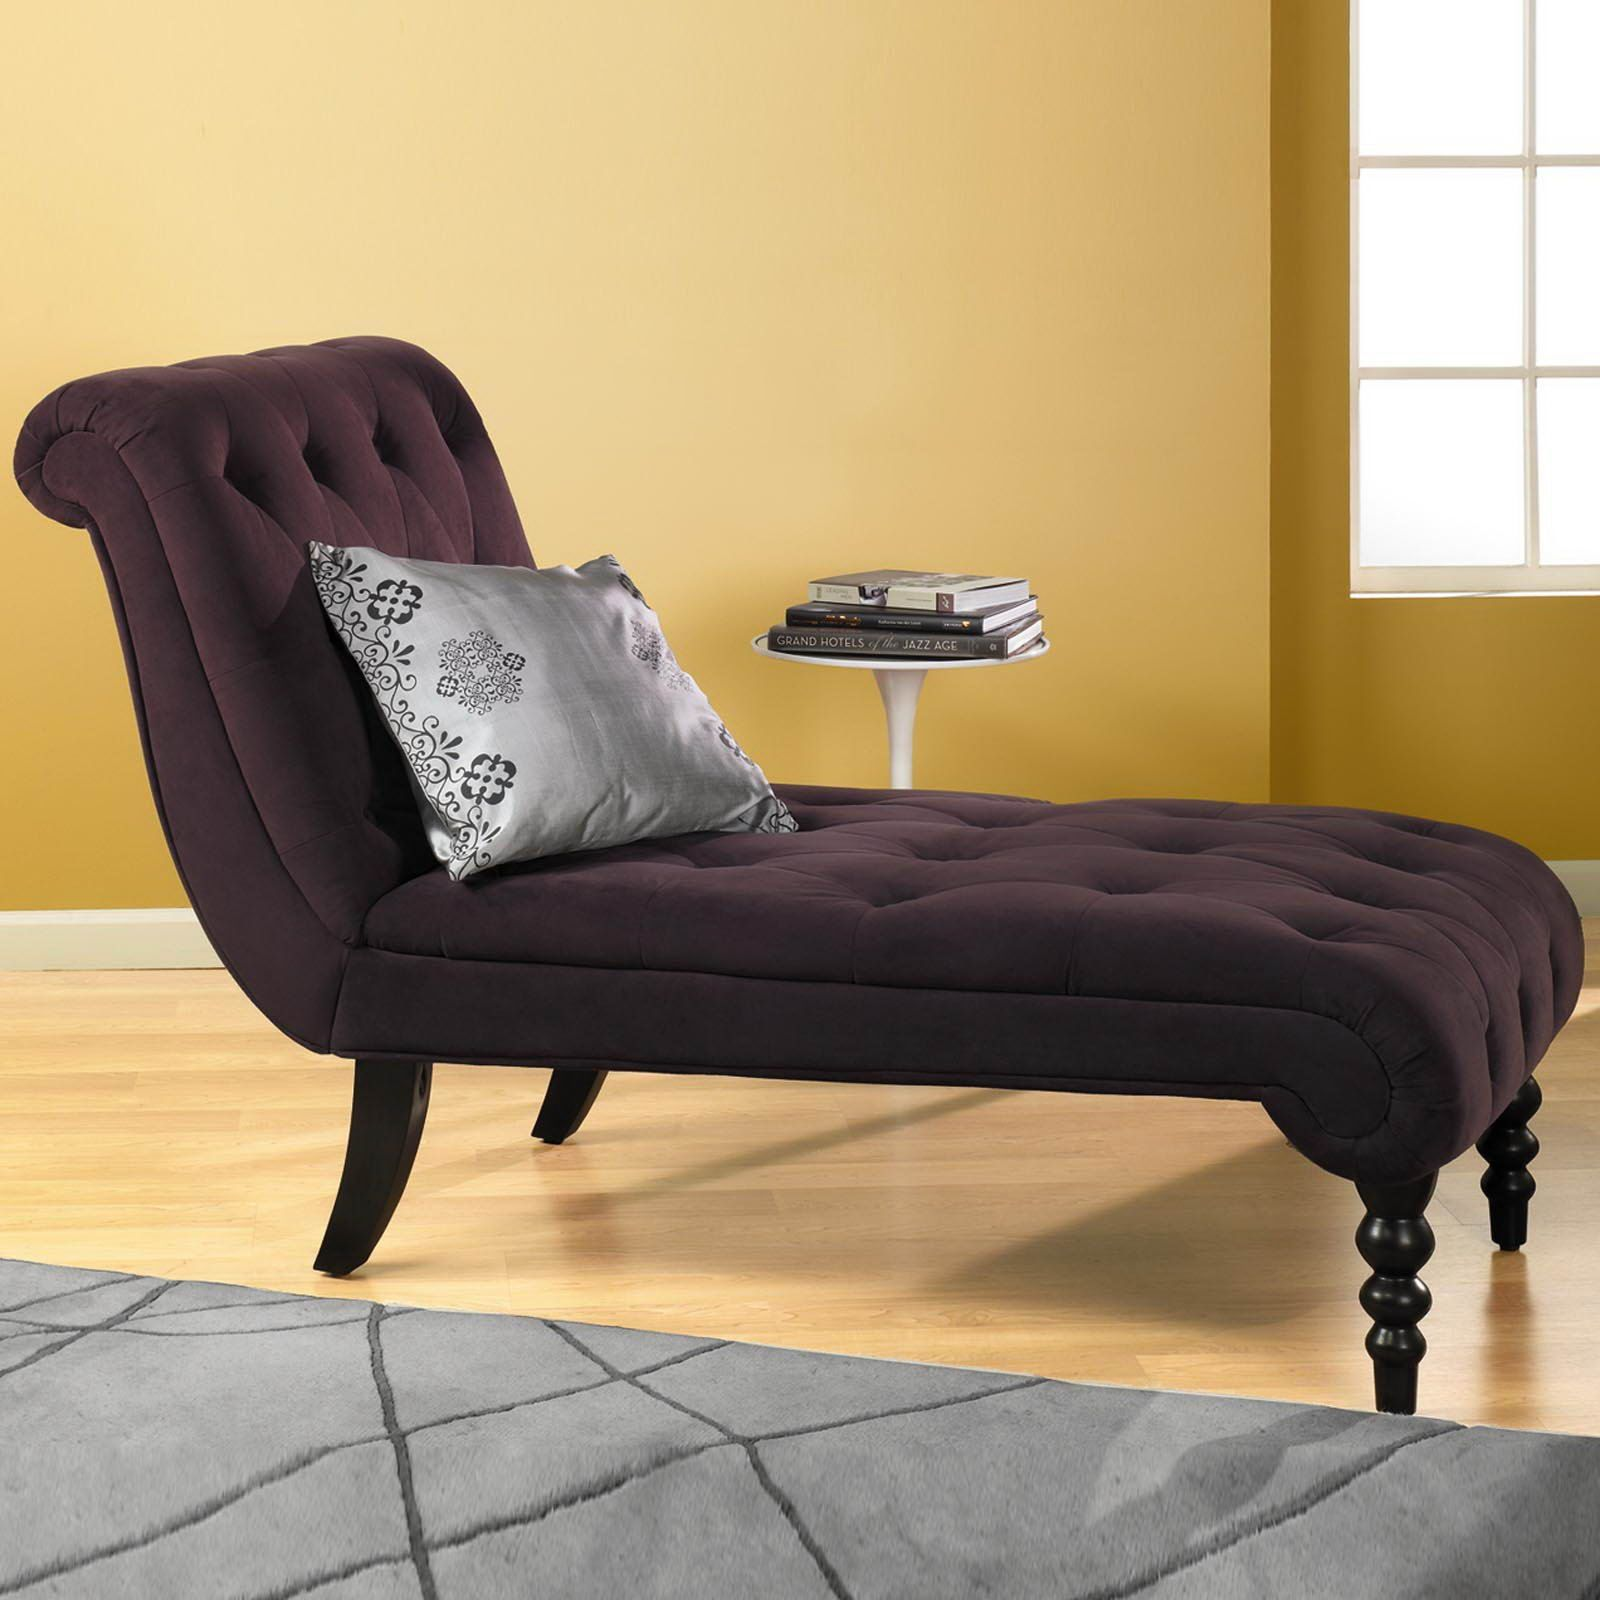 images about purple chaise lounge on pinterest popular creative and chaise lounge chairs